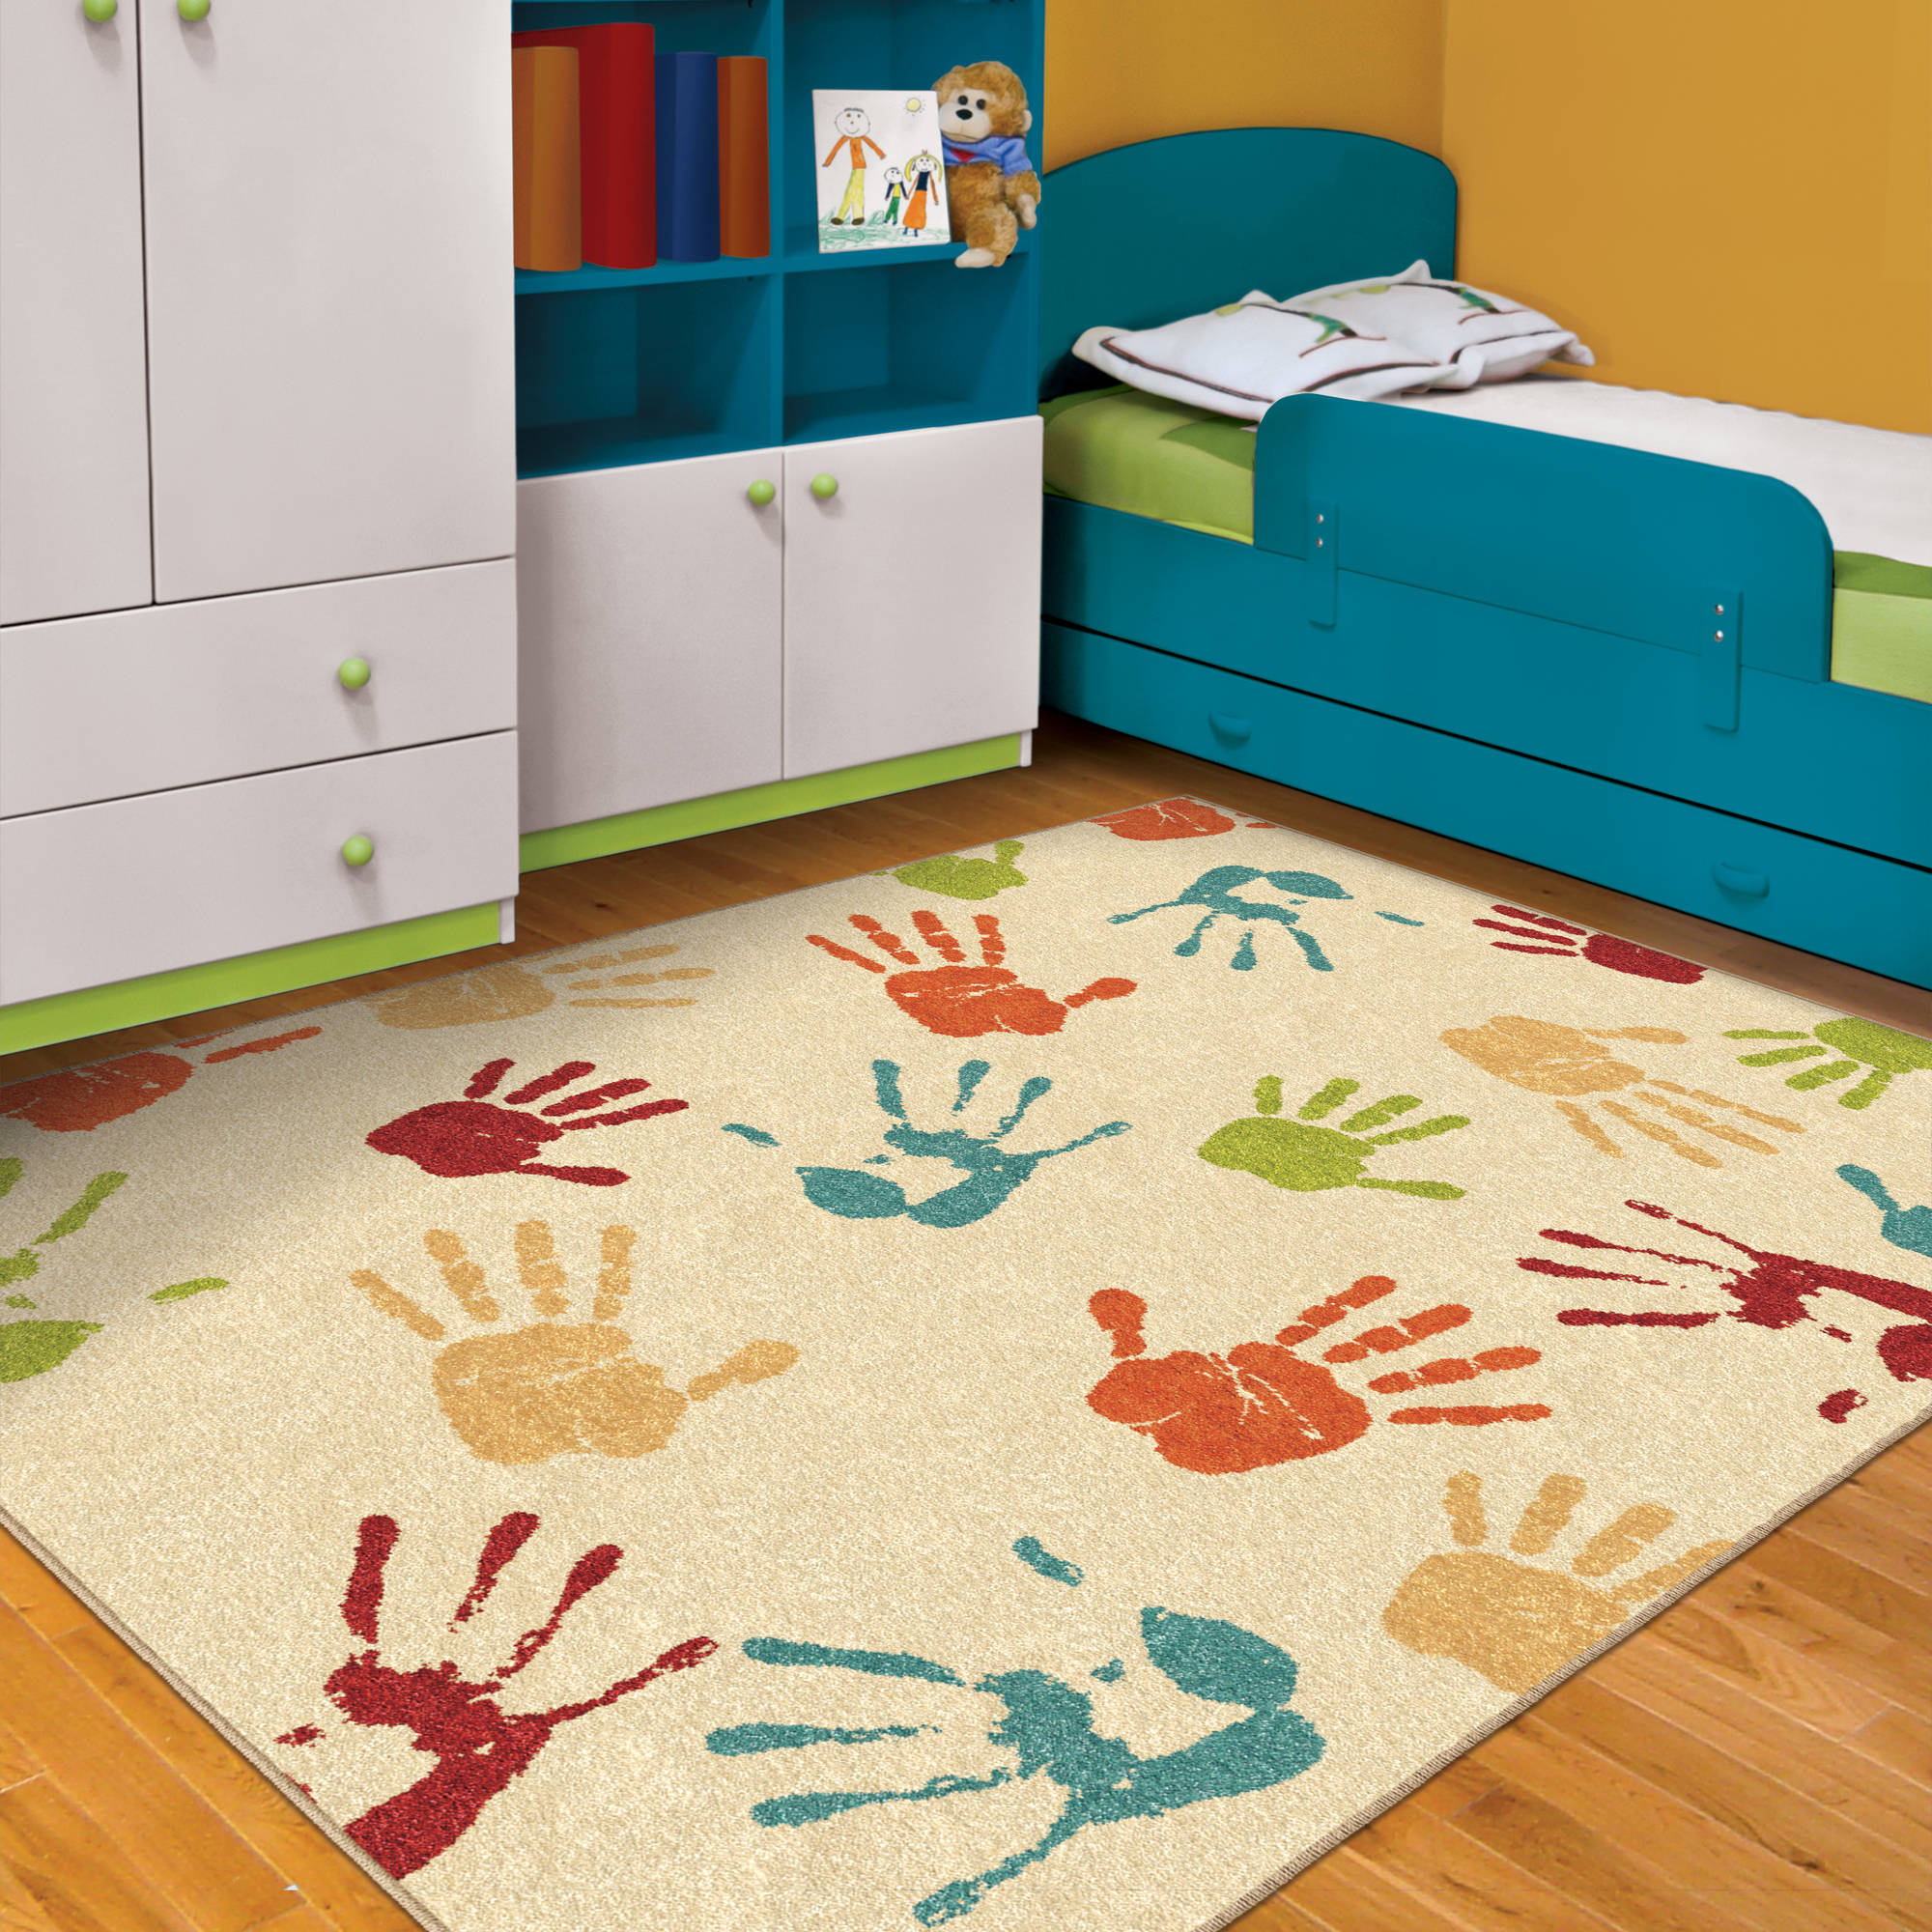 Game room rugs rugs ideas for Rugs for kids bedrooms